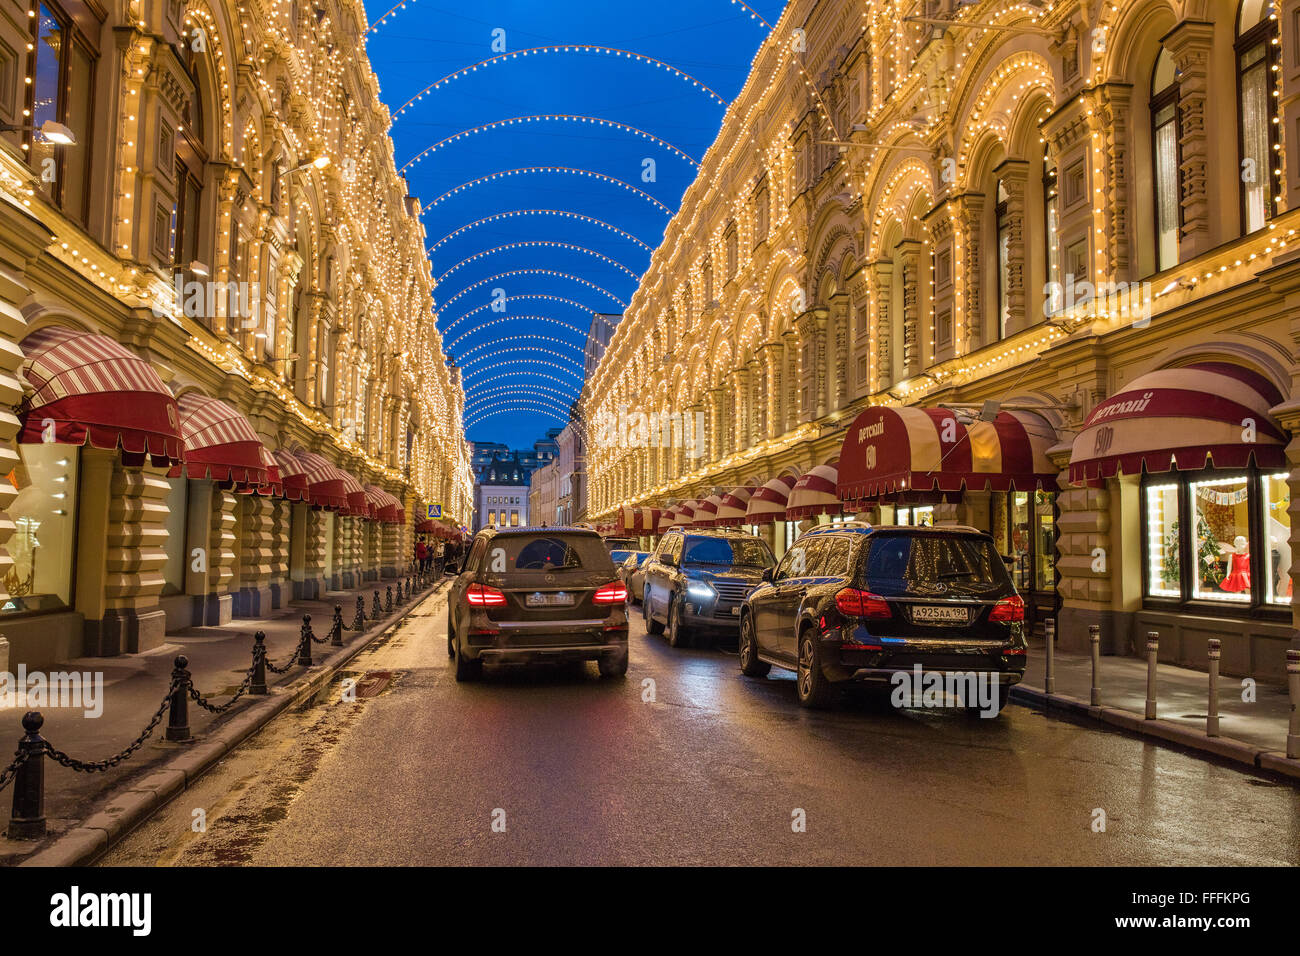 GUM, Decoration and illumination for New Year and Christmas holidays at night, Moscow, Russia - Stock Image